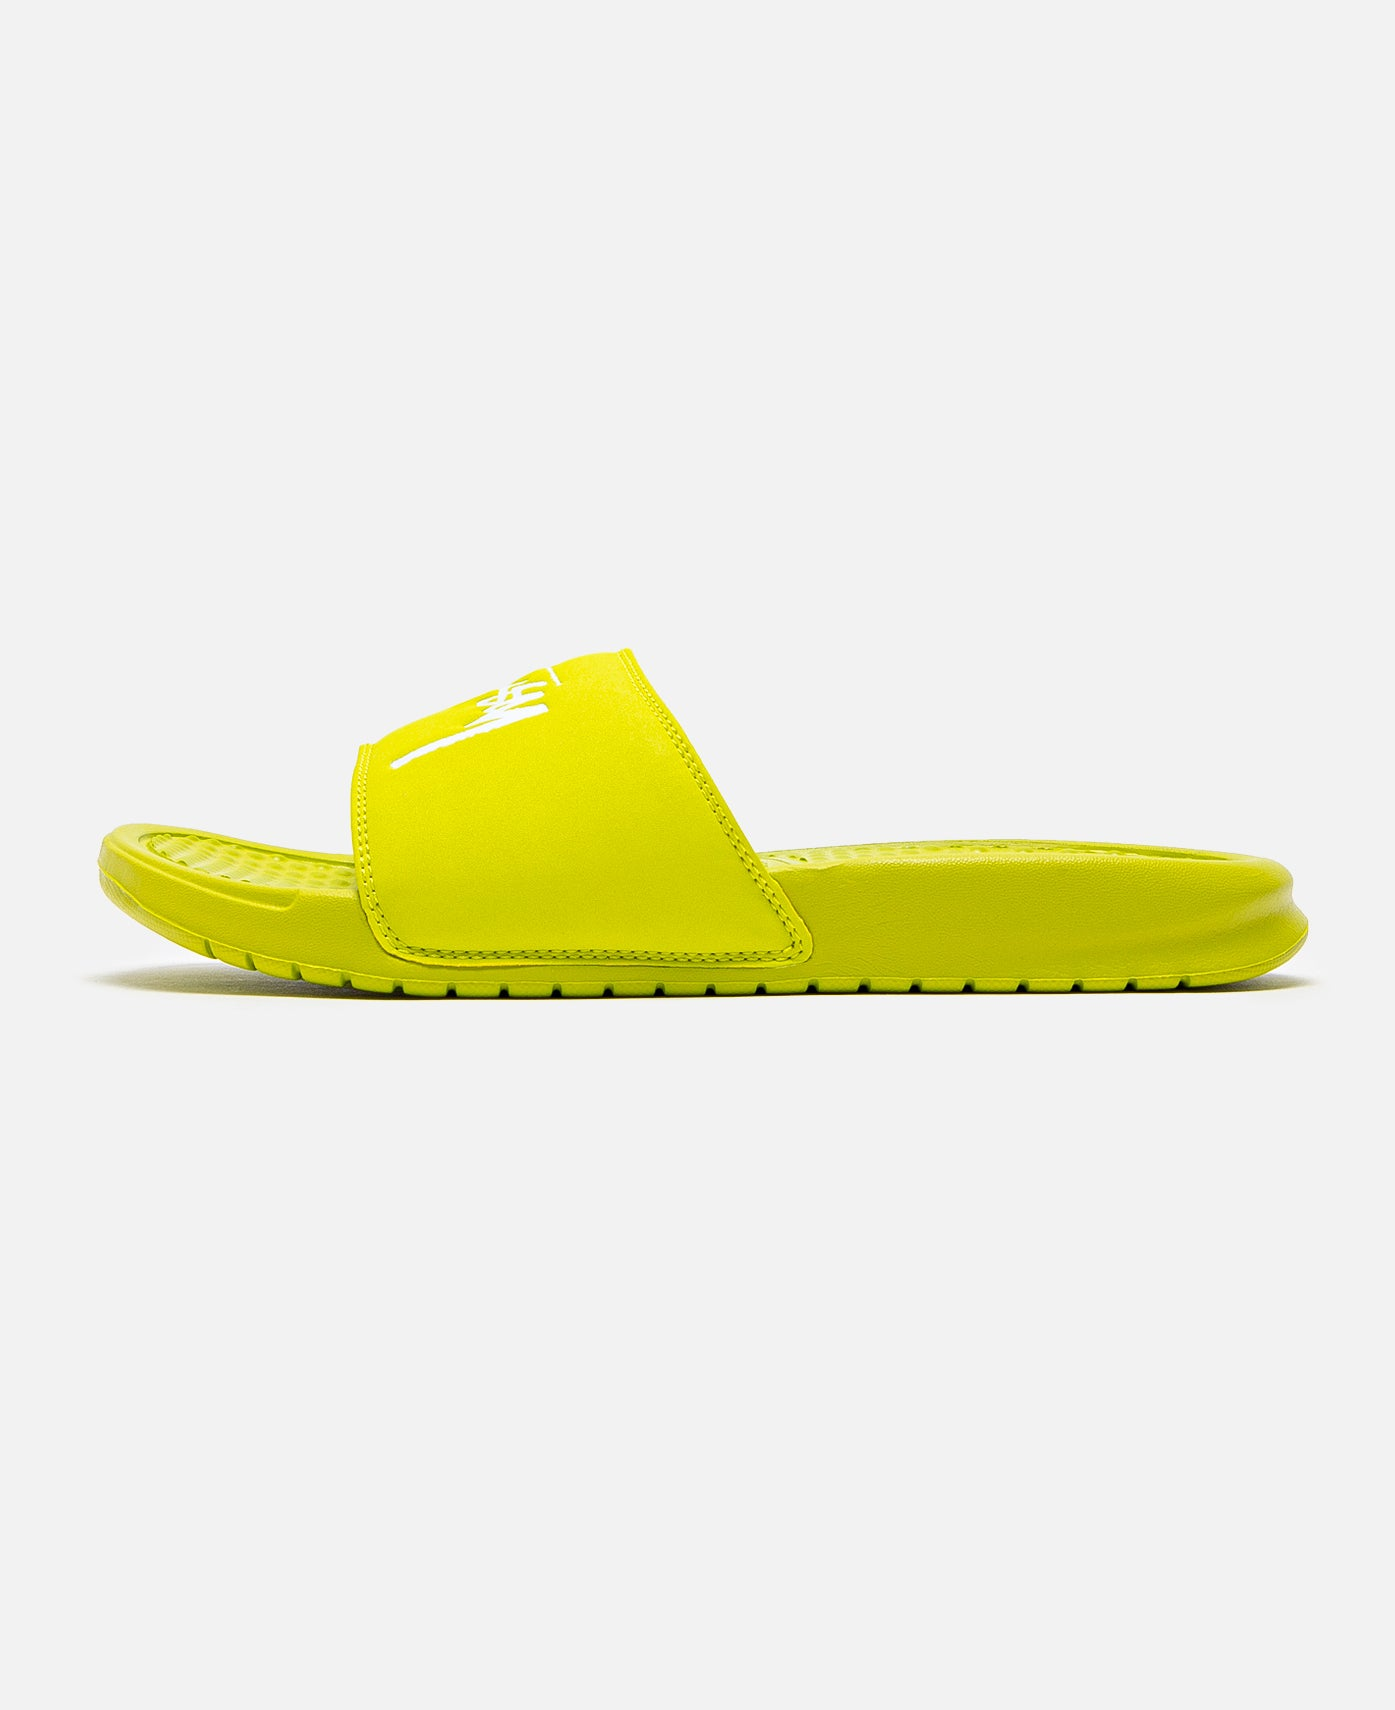 Slide Sandals (Yellow)